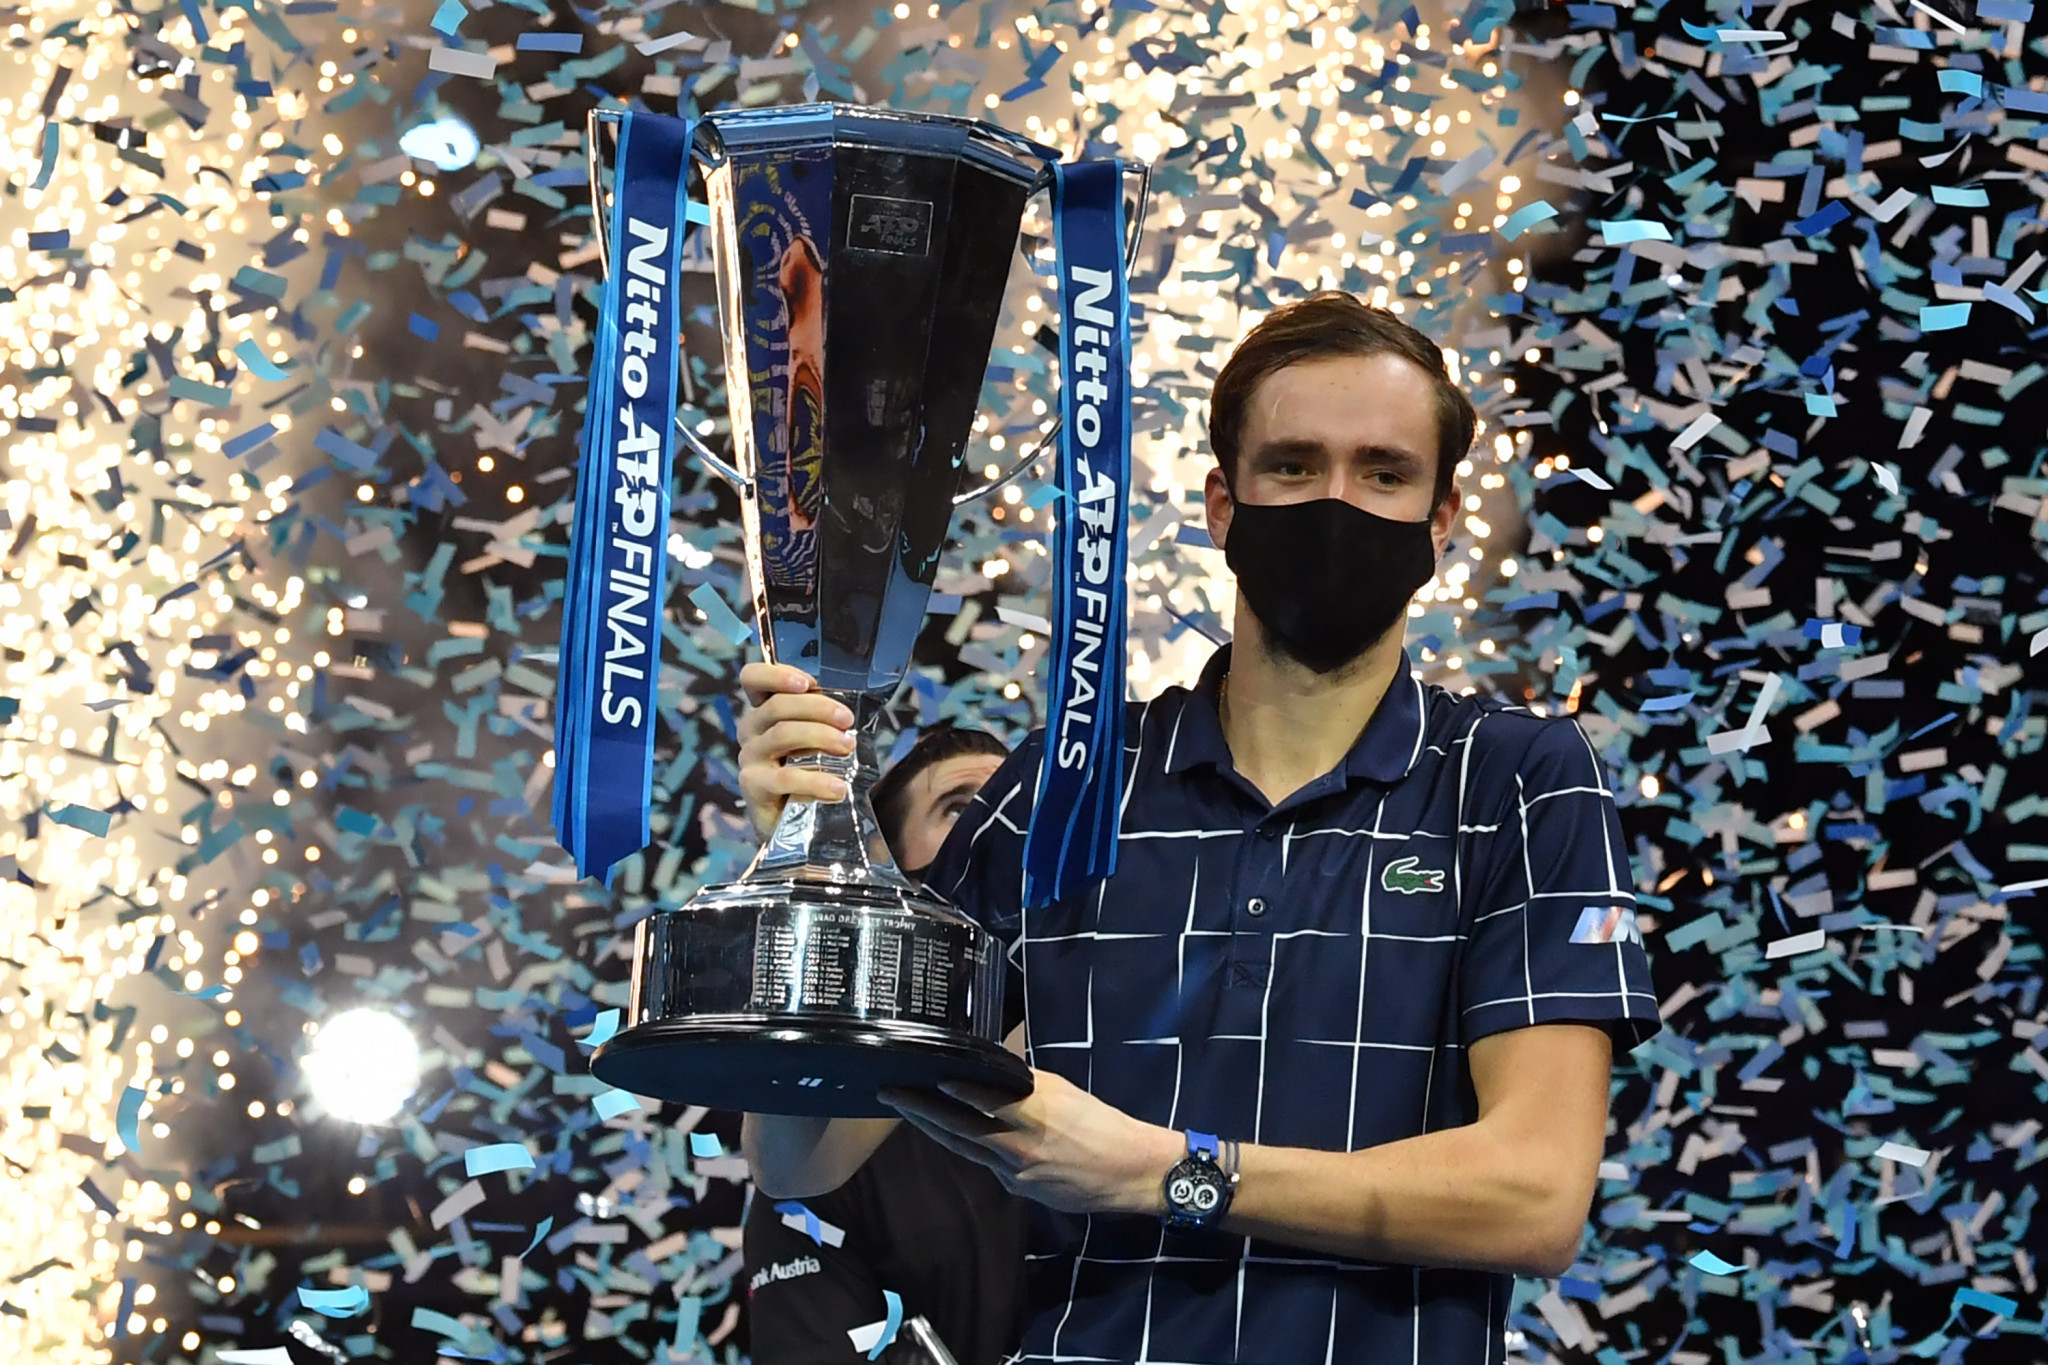 Daniil Medvedev won the ATP Finals for the first time ©Getty Images